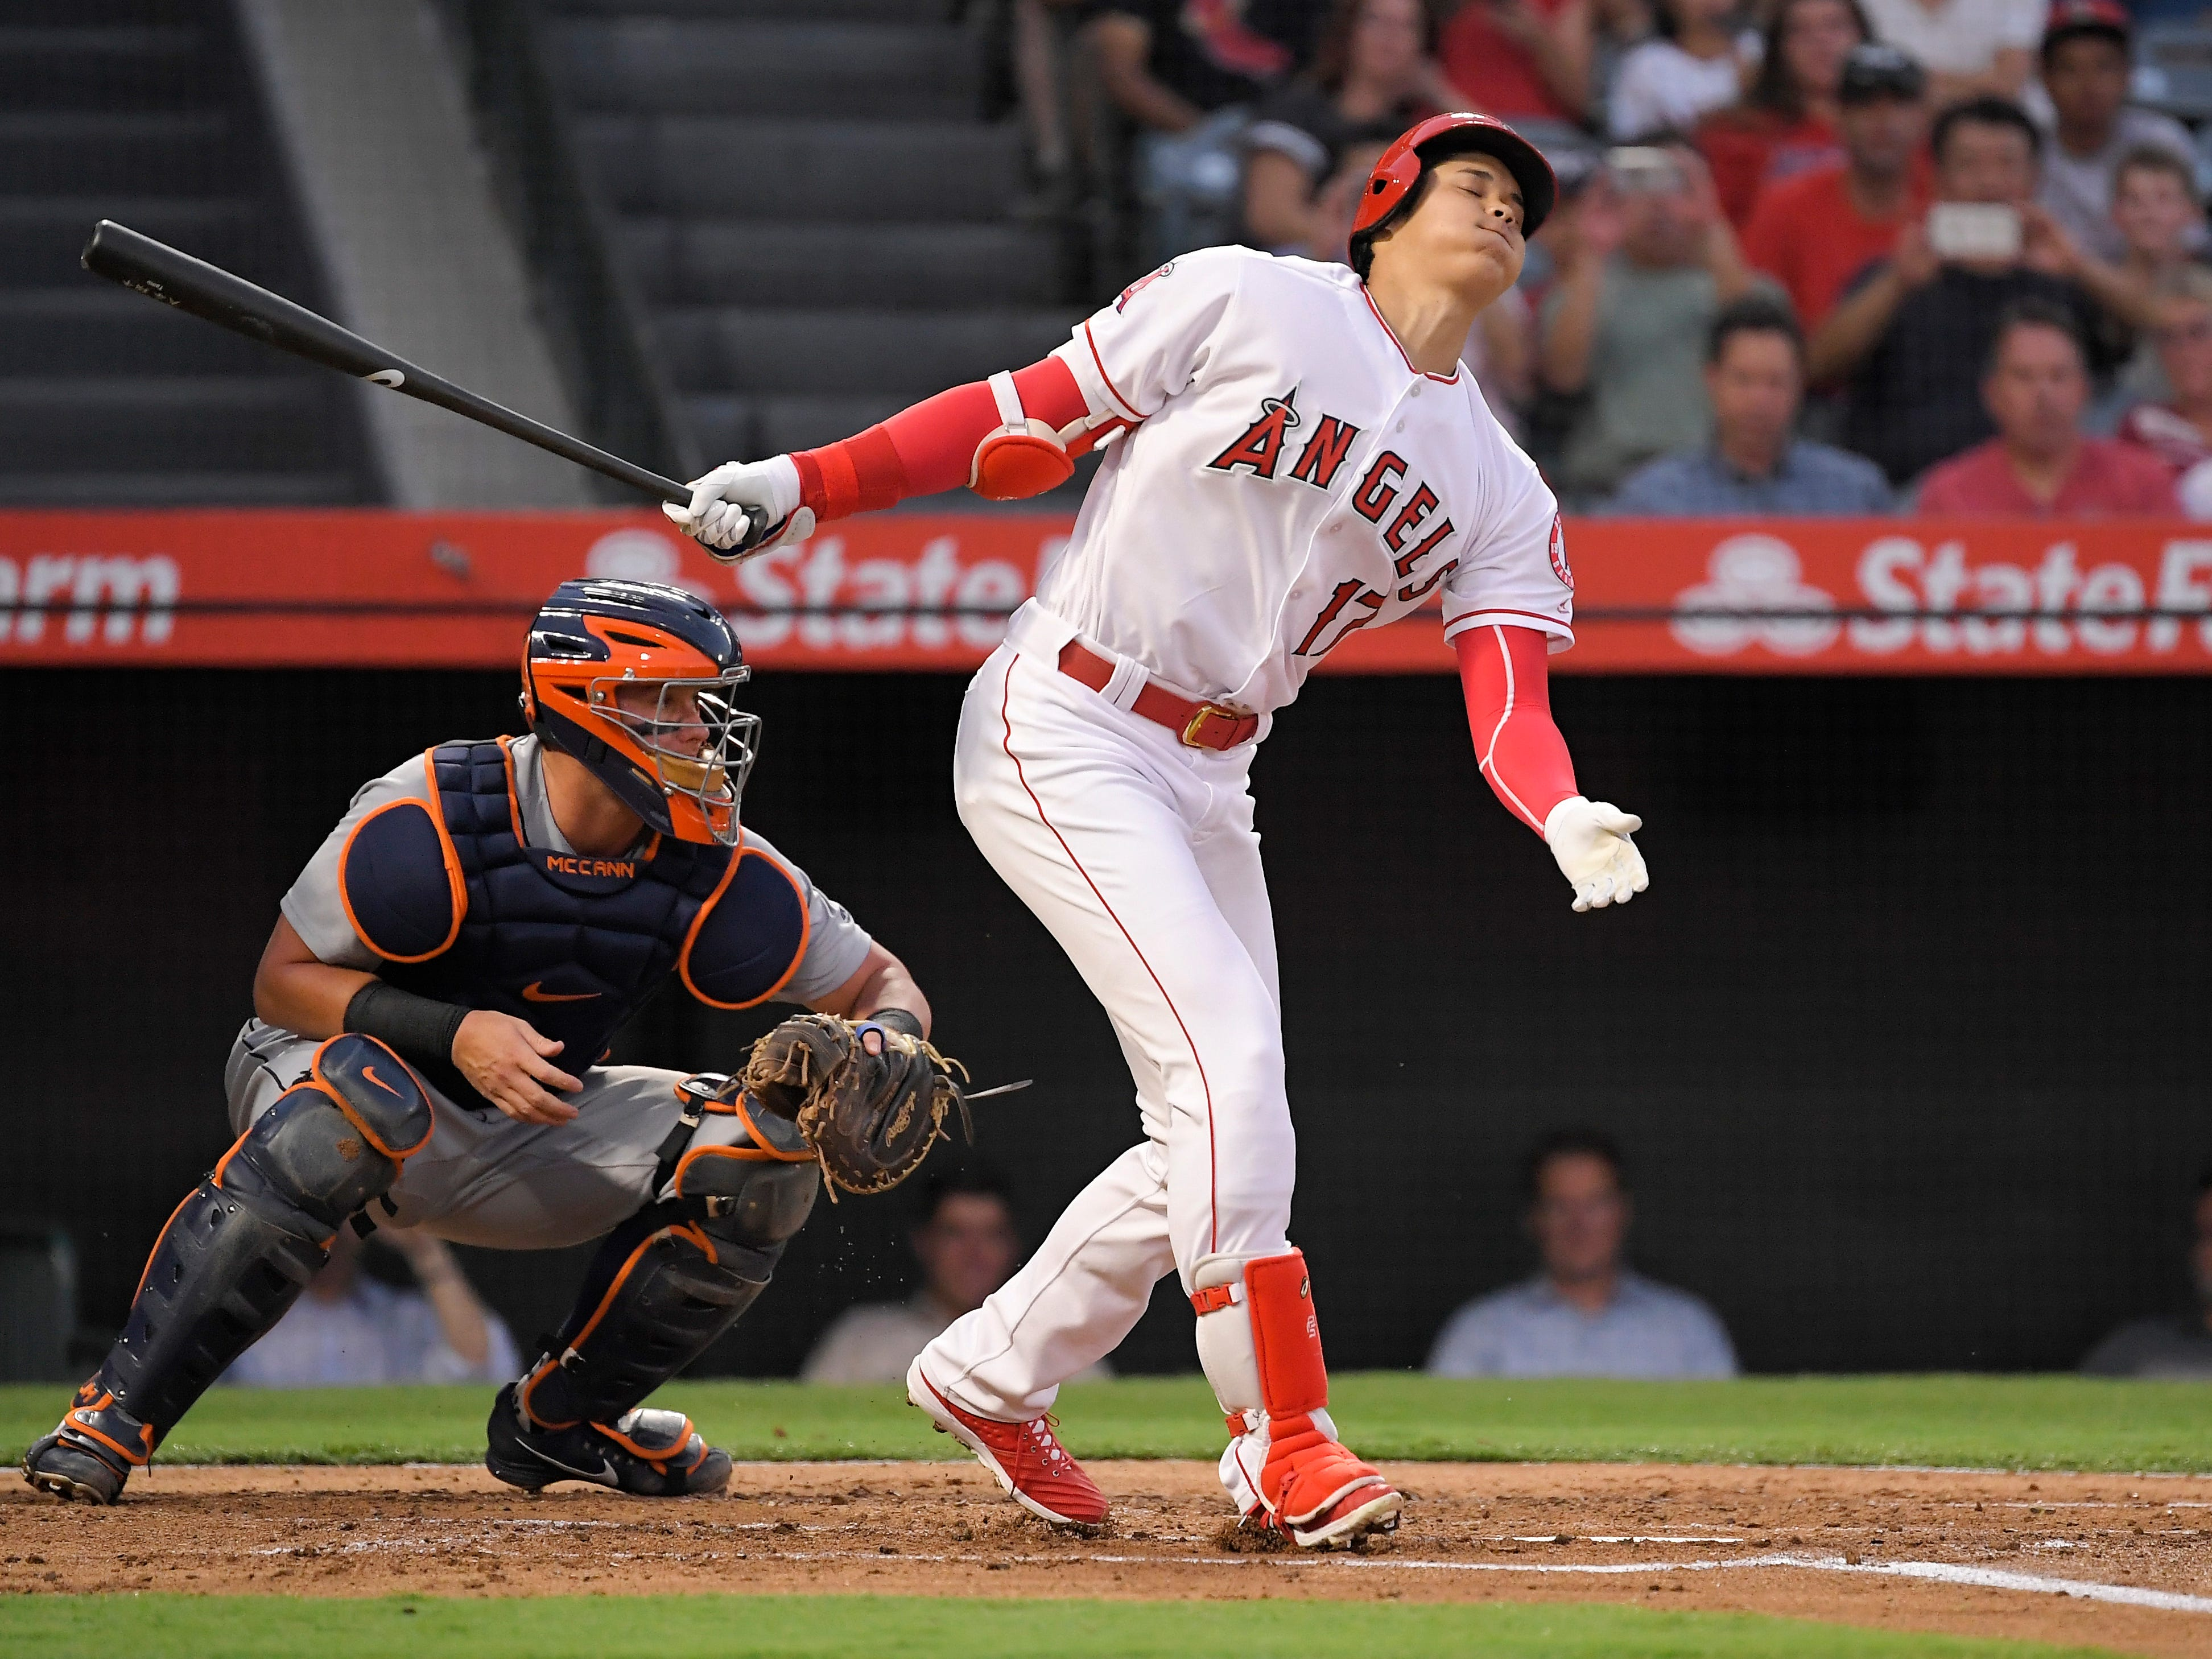 Los Angeles Angels' Shohei Ohtani, of Japan, strikes out during the second inning.